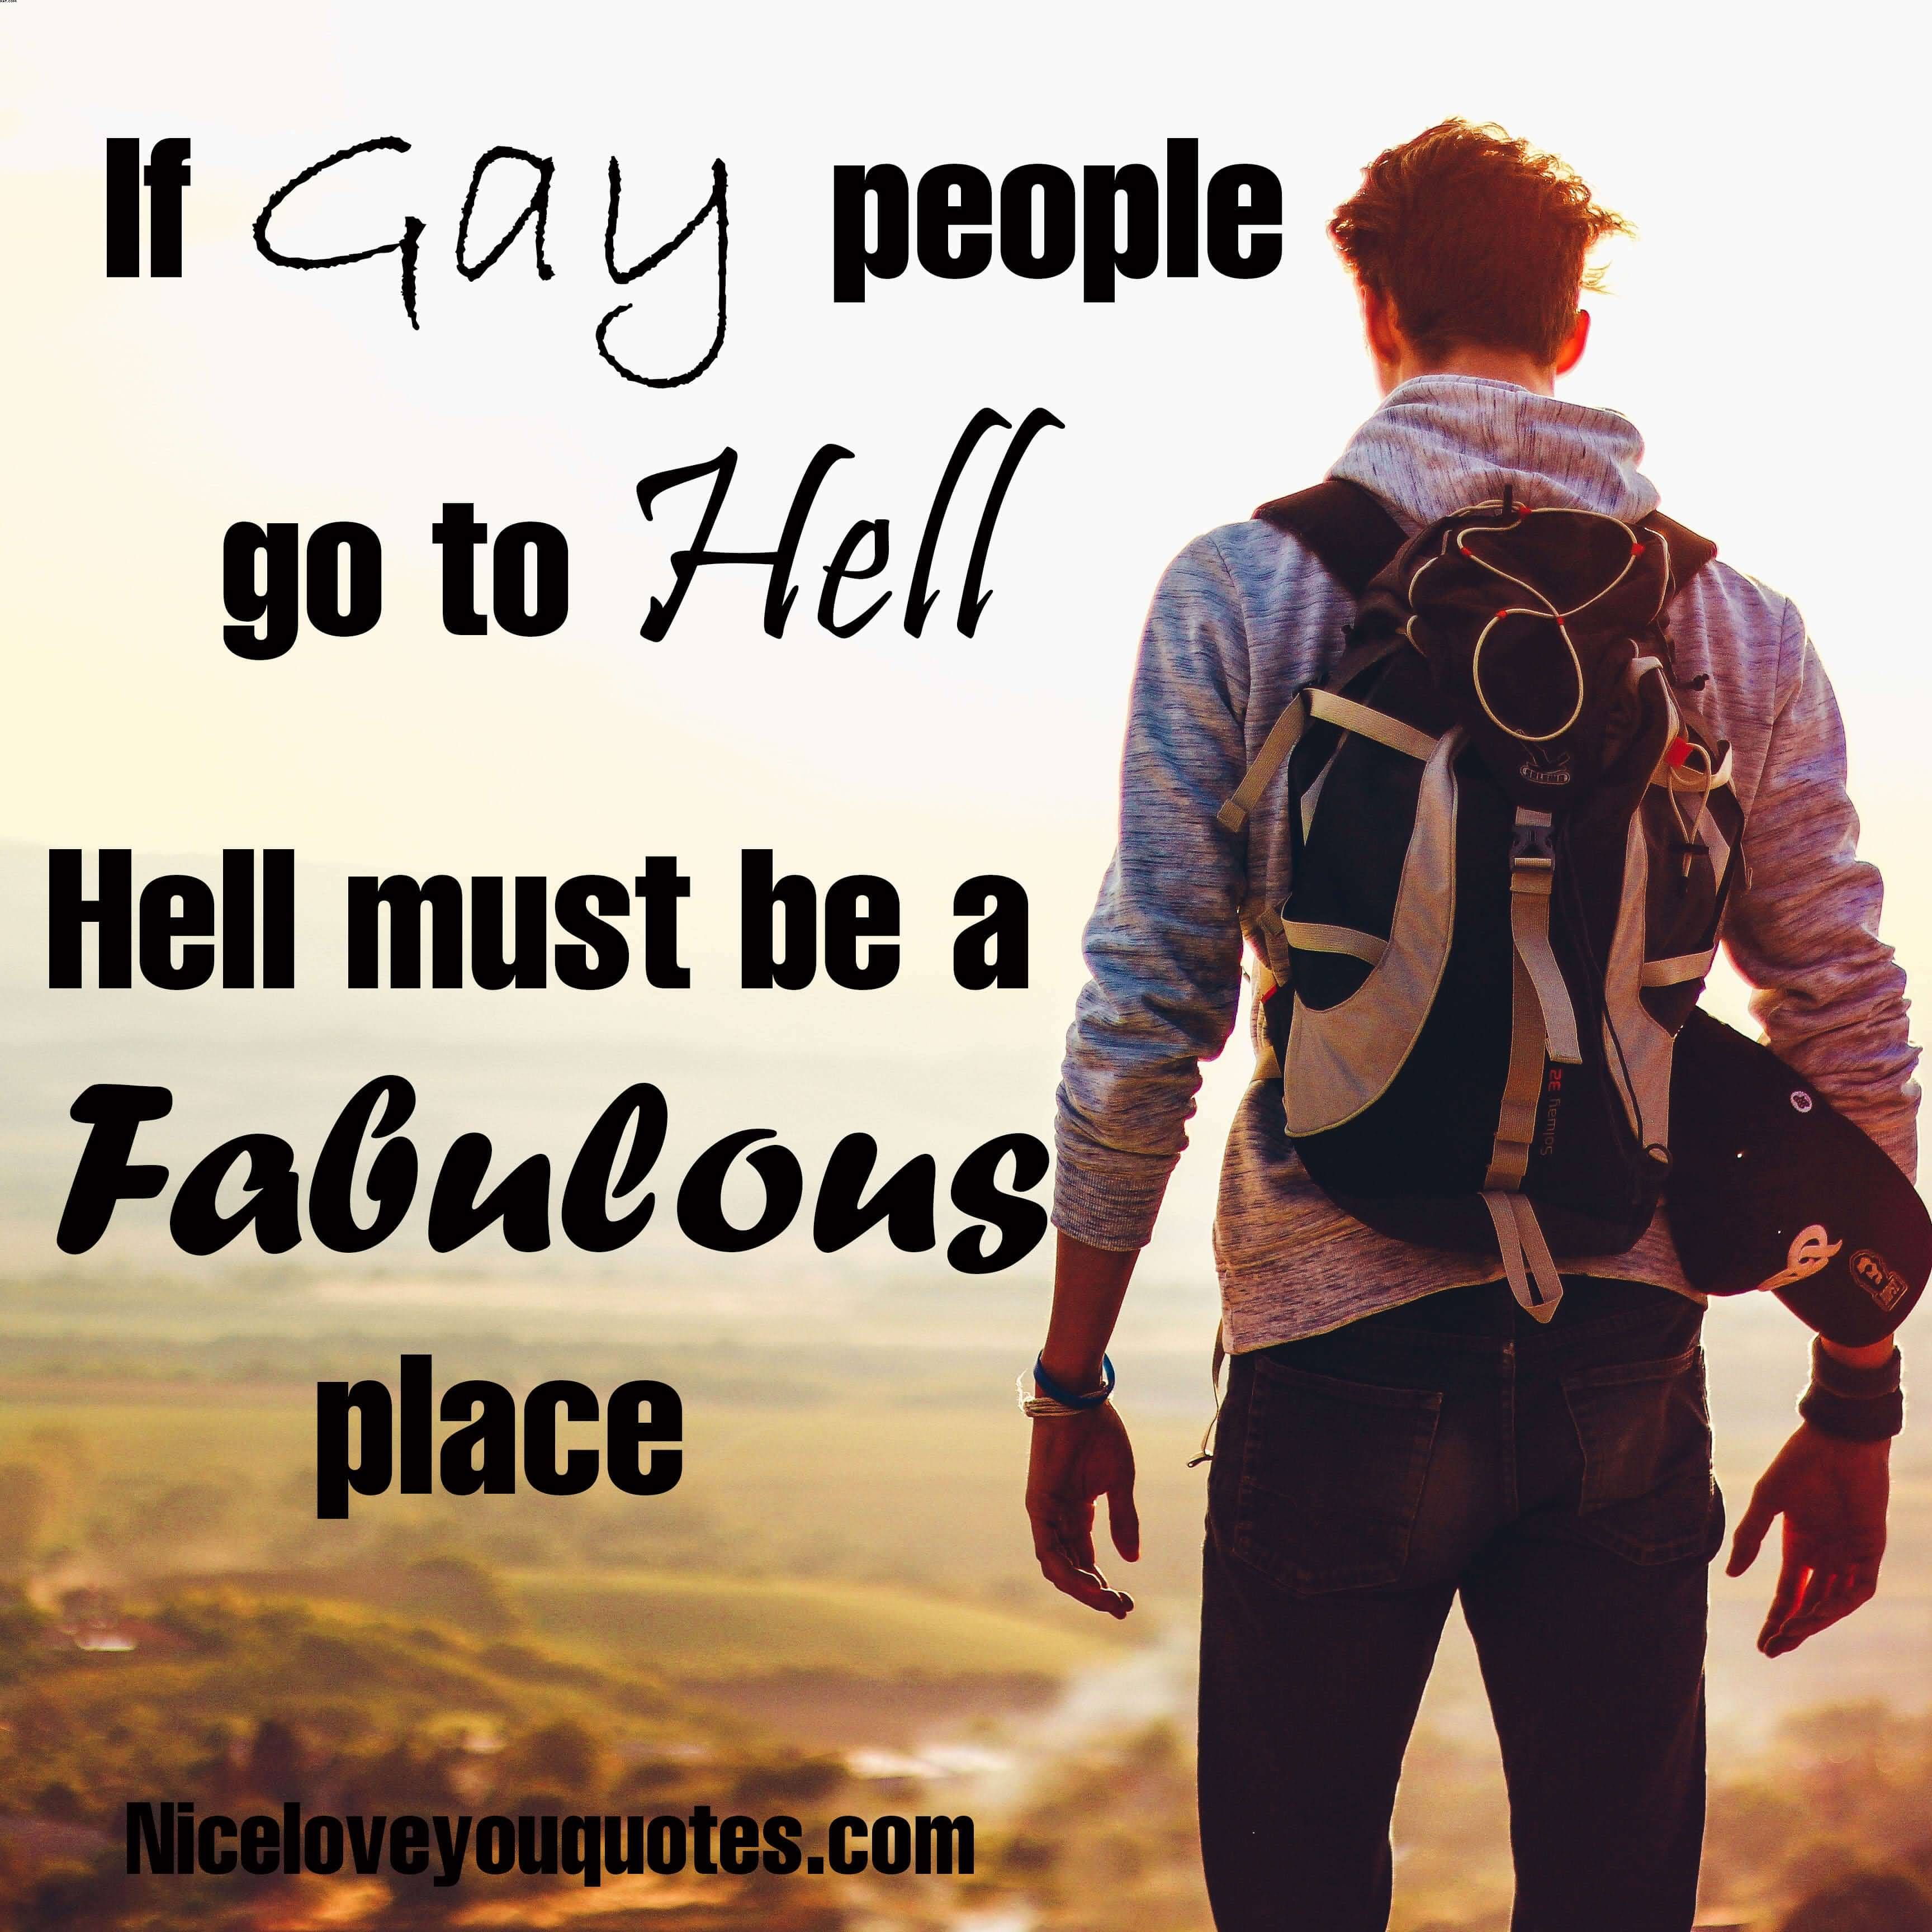 Pin on 121 Top Gay Quotes or sayings